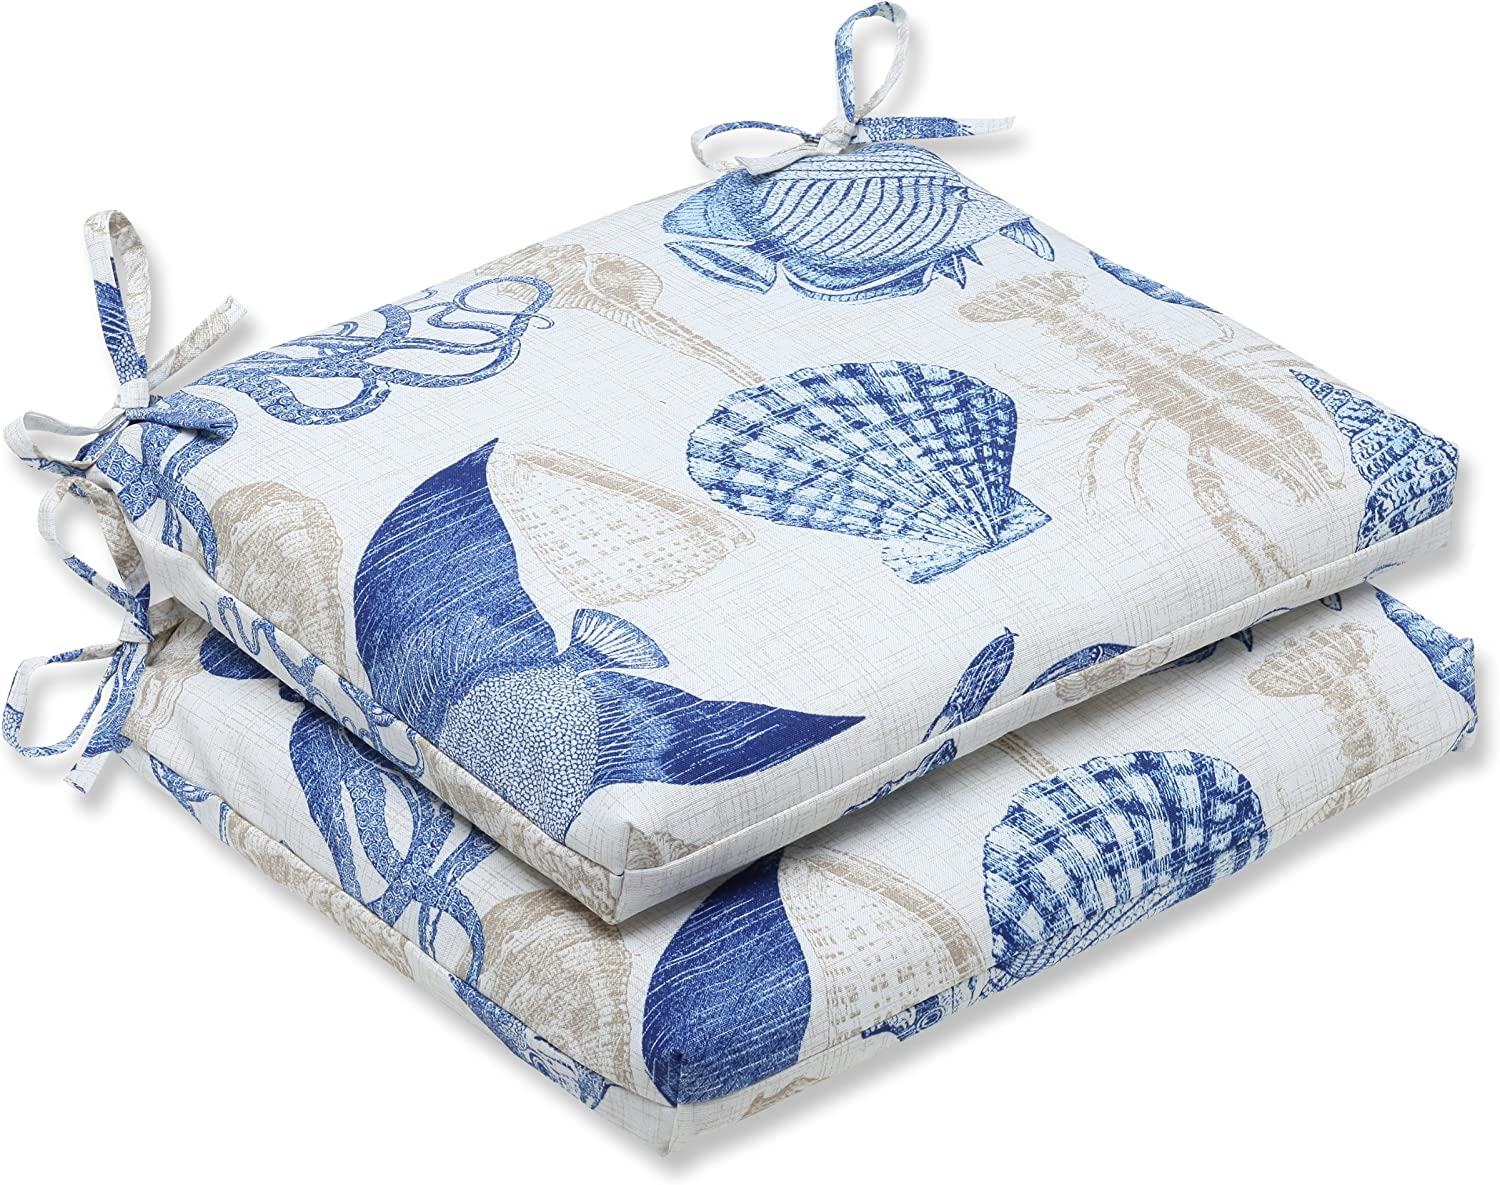 Pillow Perfect Outdoor Sealife Marine Squared Corners Seat Cushion, Set of 2